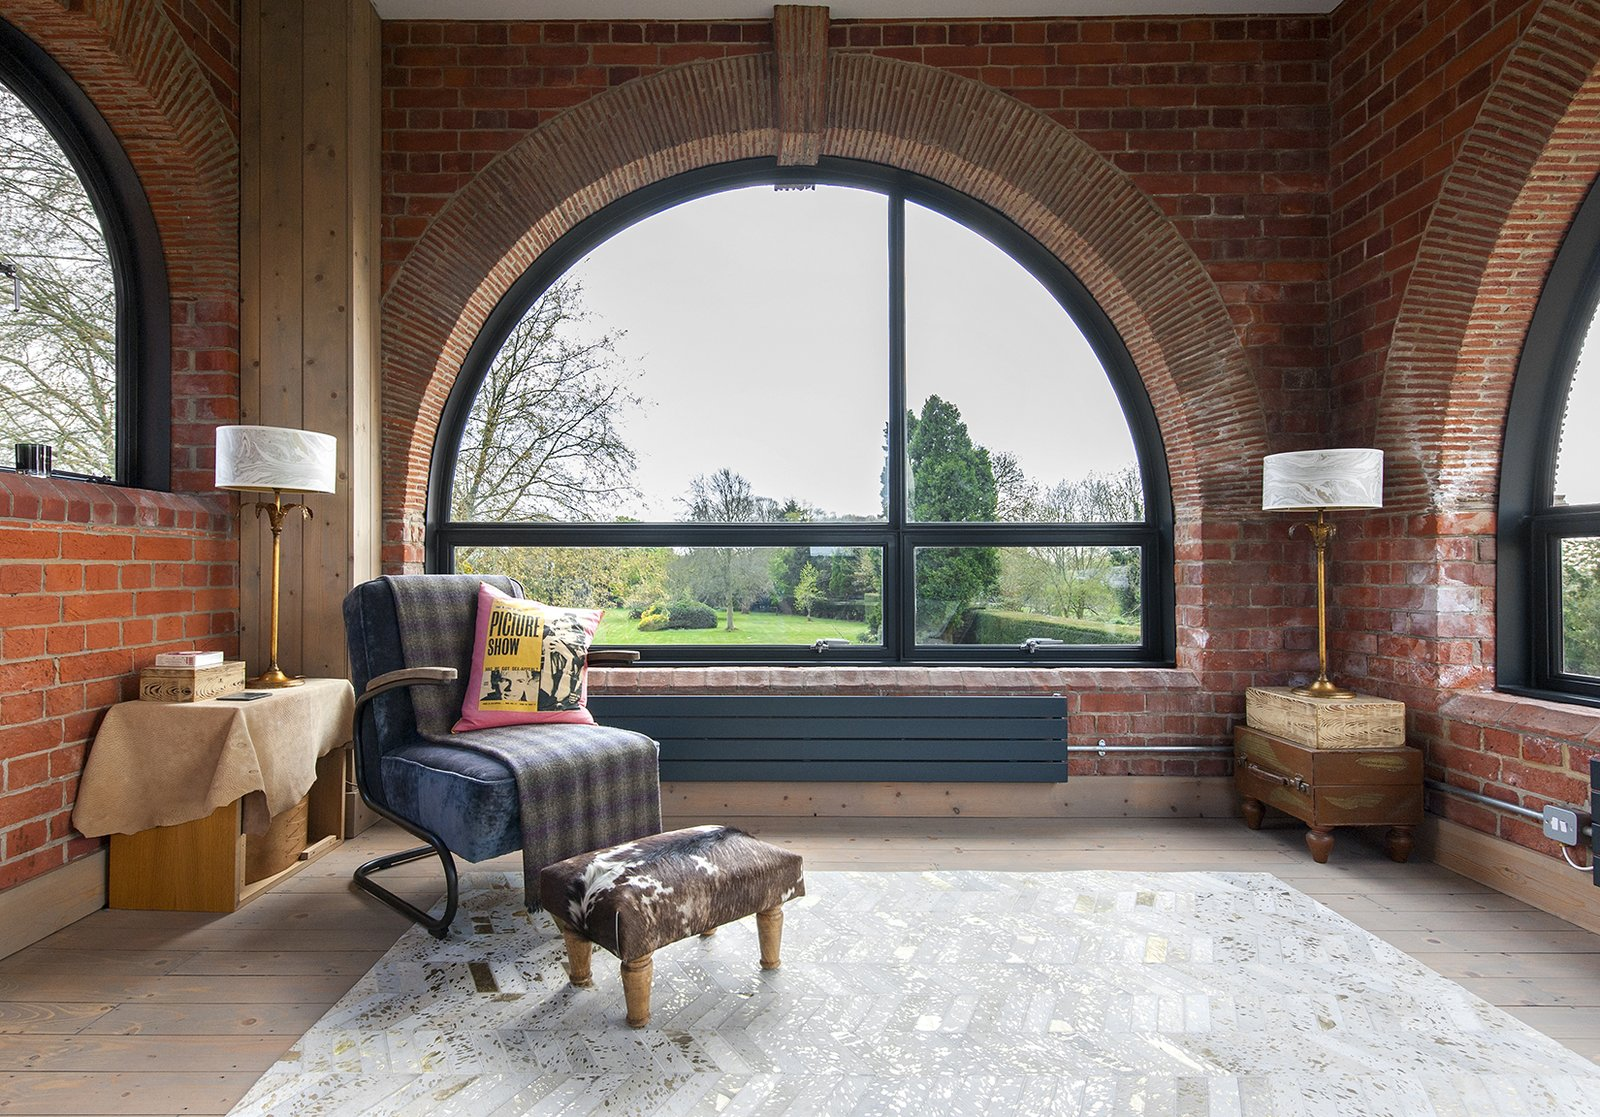 The facade is punctuated by windows of various shapes, including half-moons by Crittall. The armchair and chevron rug are from Graham & Green. Tagged: Living Room, Table Lighting, End Tables, Chair, Lamps, and Light Hardwood Floor.  Lister Tower by Dwell from A Refurbished, Victorian-Era Brick Tower in Hampshire